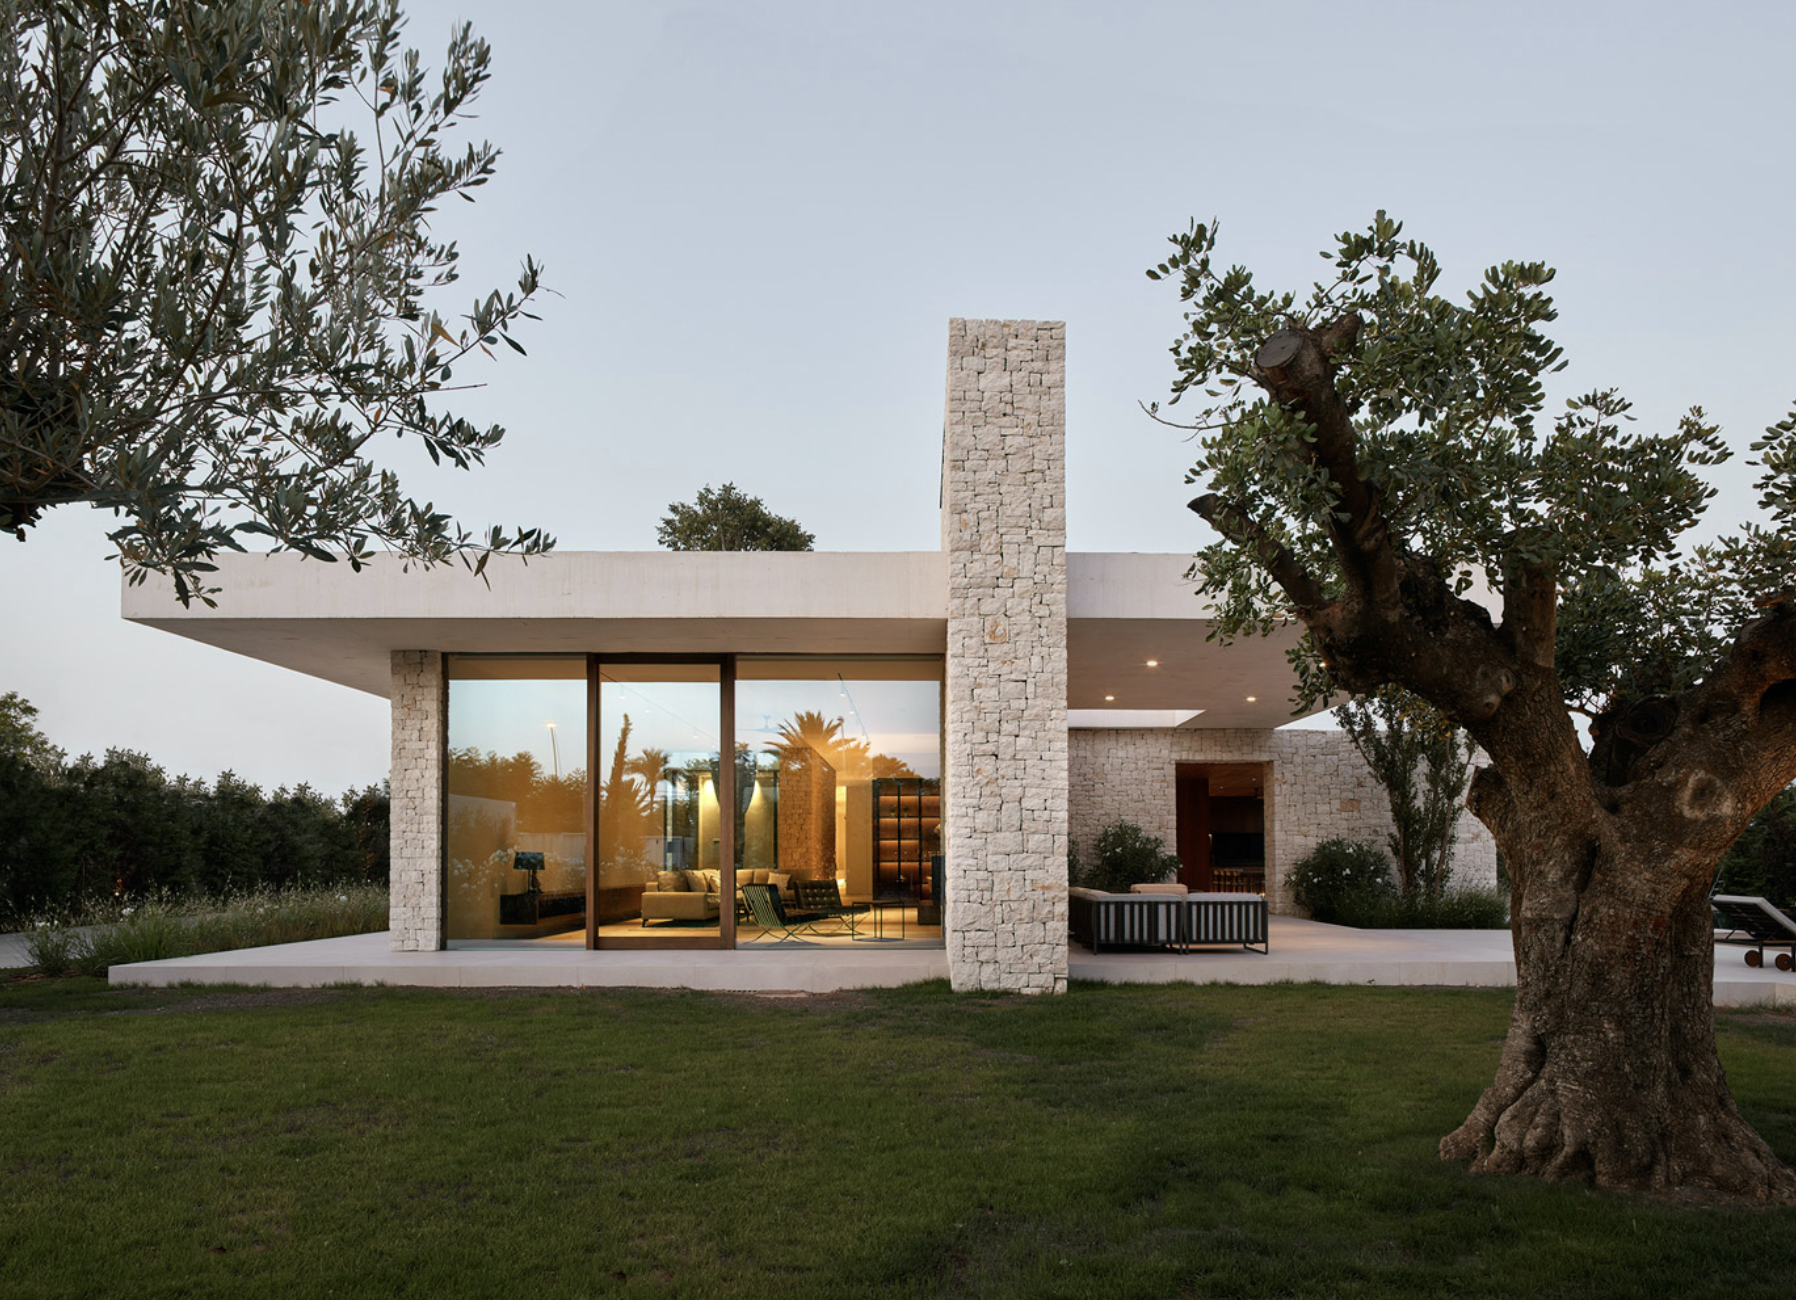 Ramon Esteve's Madrigal House is perfect for summer living